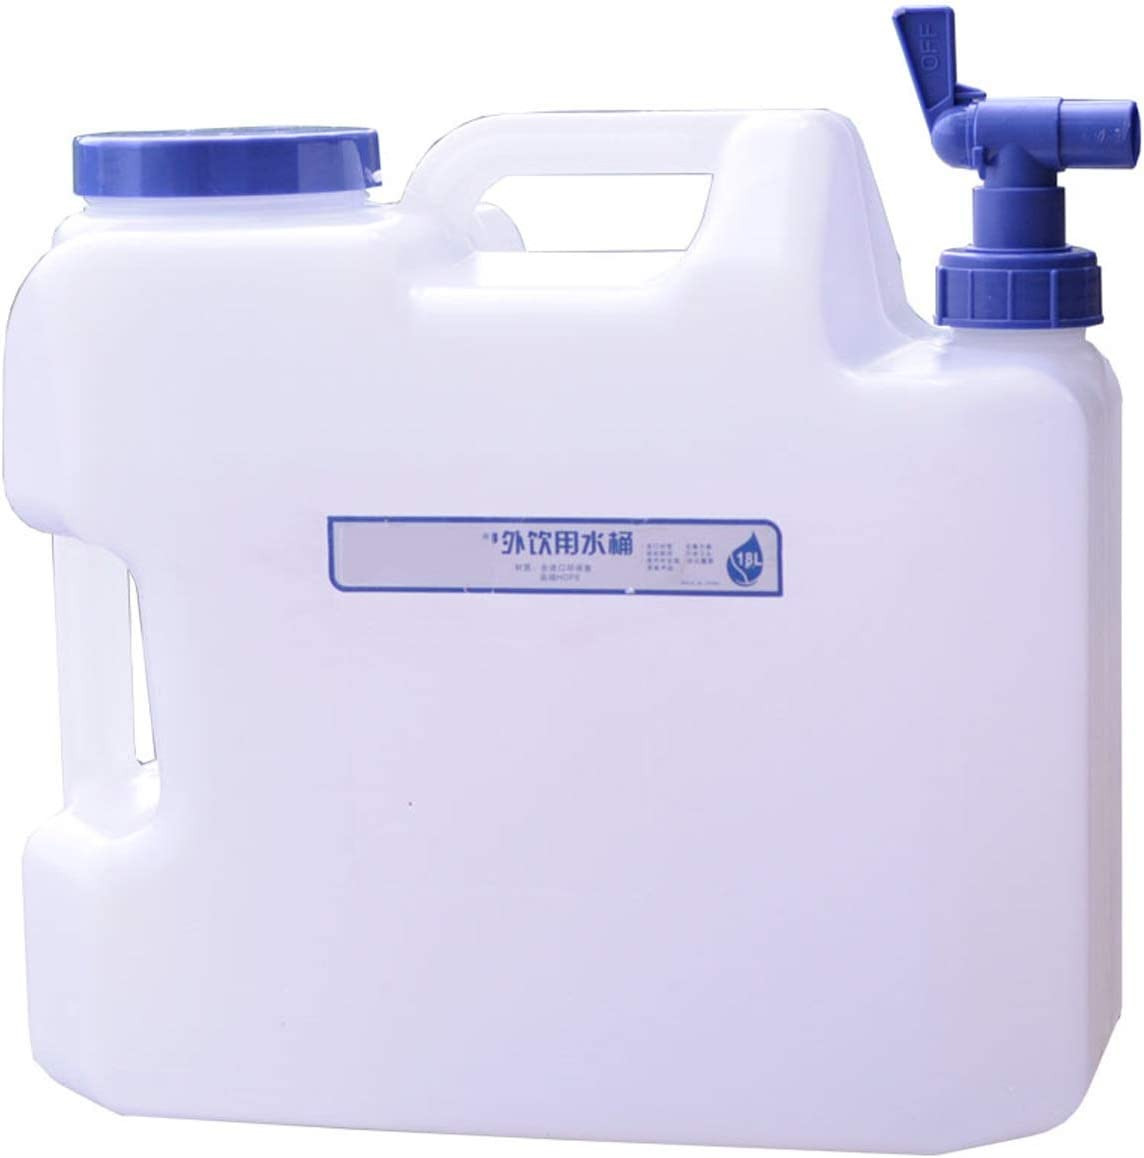 Water Storage Bucket Container With Faucet Bucke Save Financial sales sale money Tap